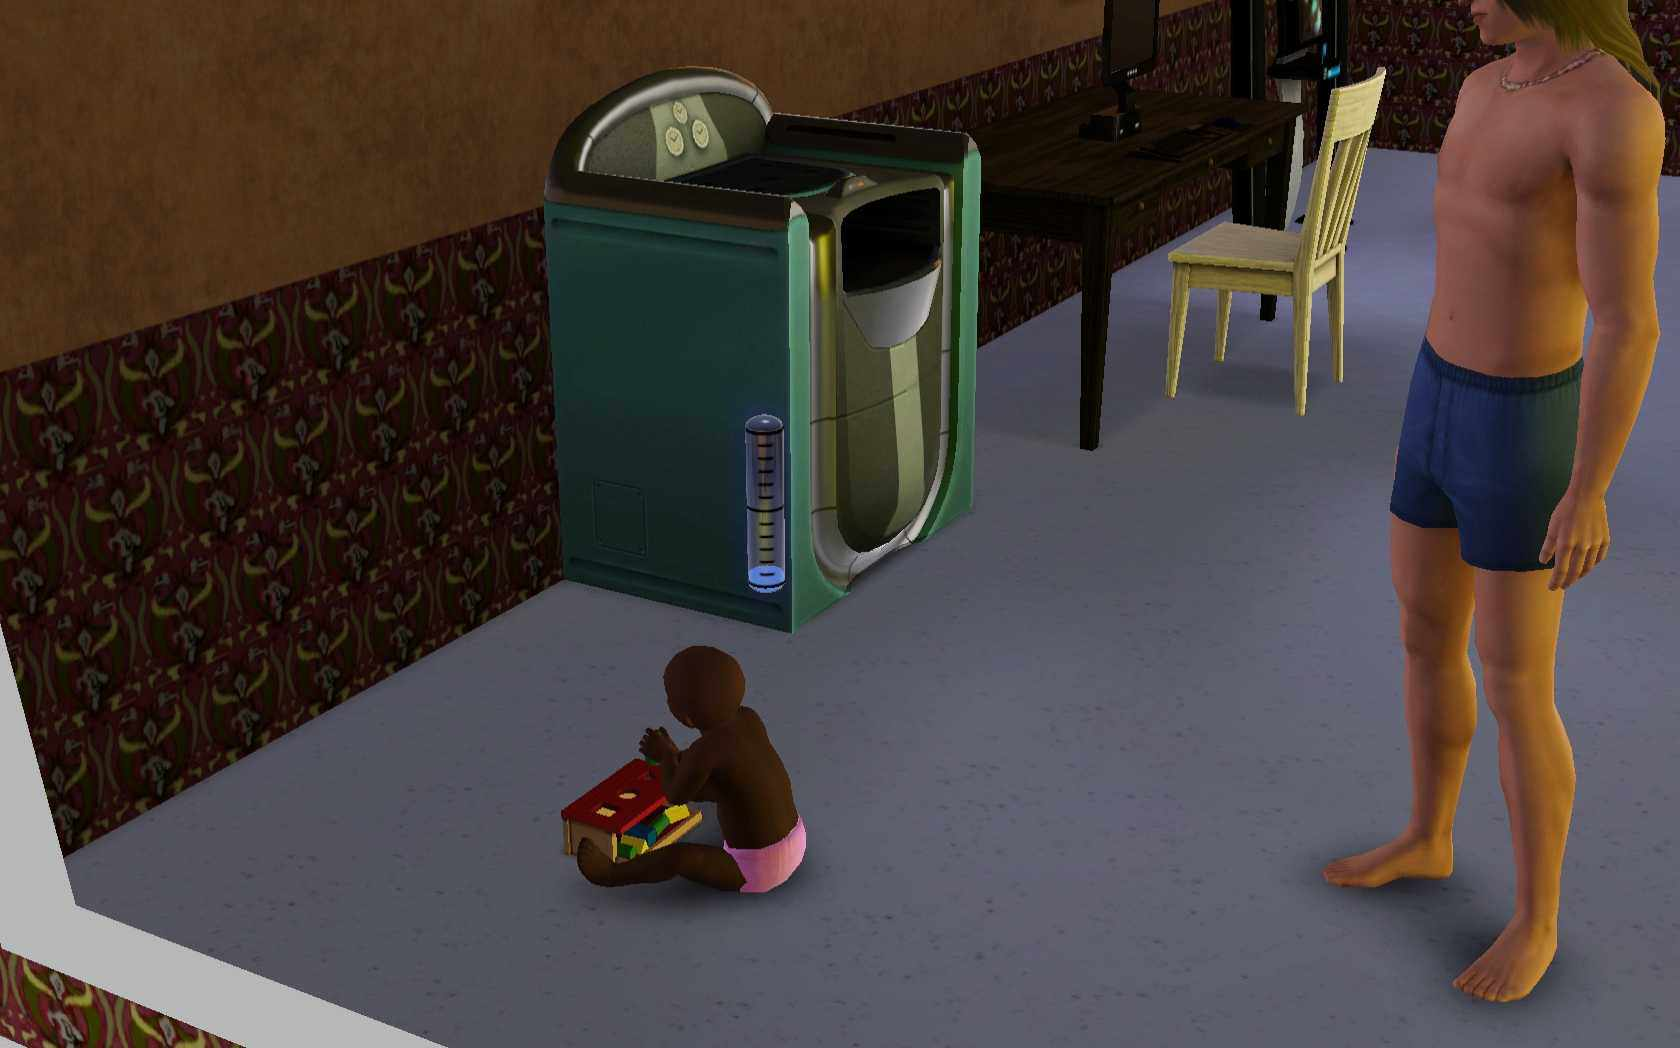 Sims 4 Toddler Stroller Mod The Sims 3 Baby And Toddler Guide